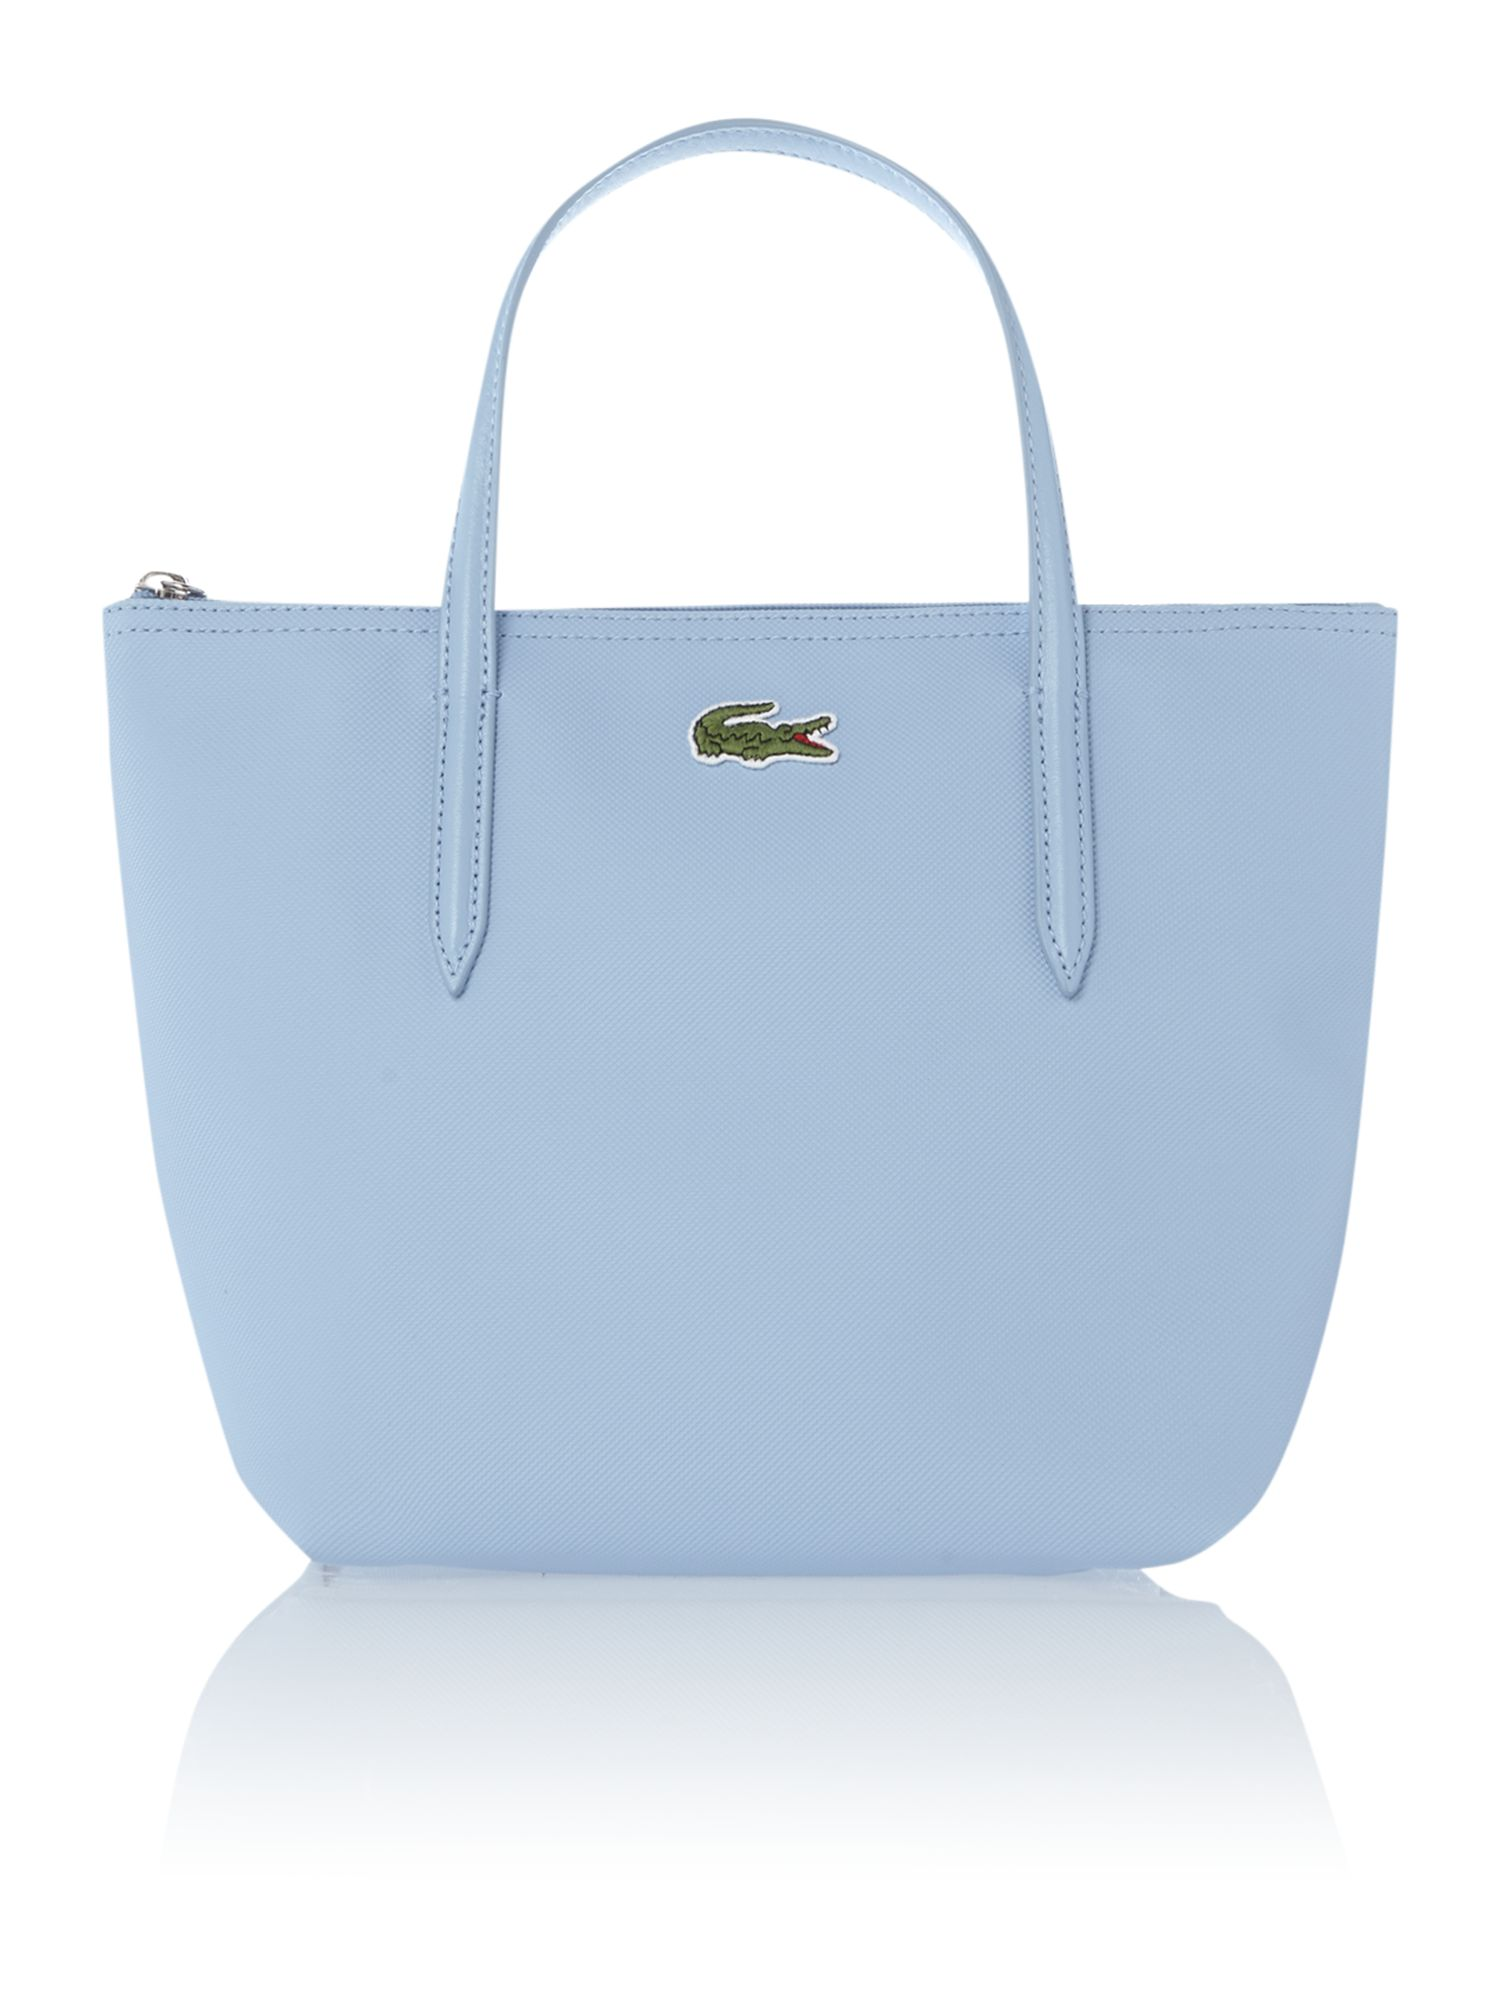 Blue small tote bag